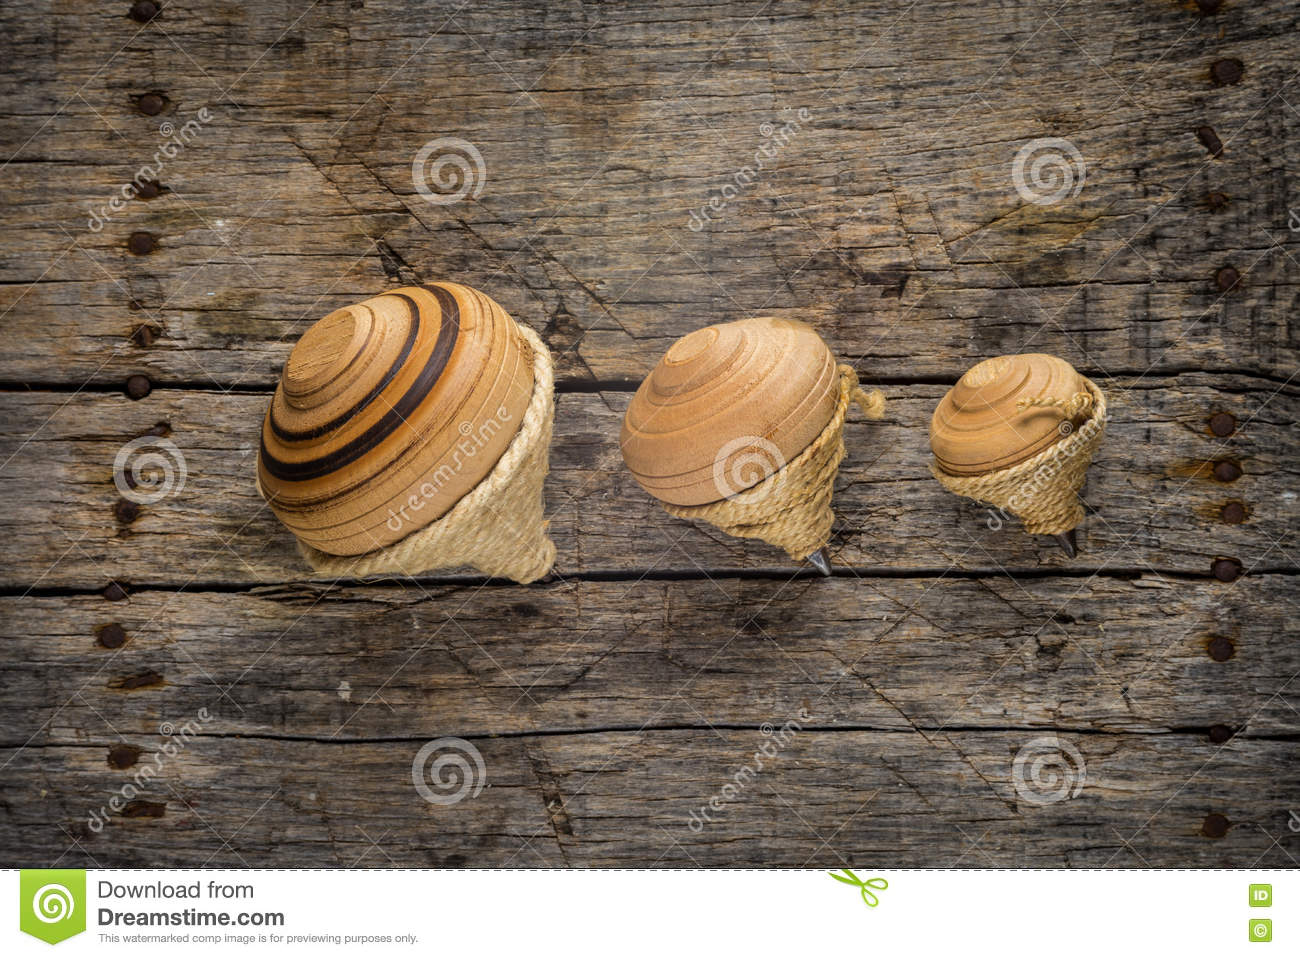 Old spinning tops stock photo  Image of wooden, rope - 79175110